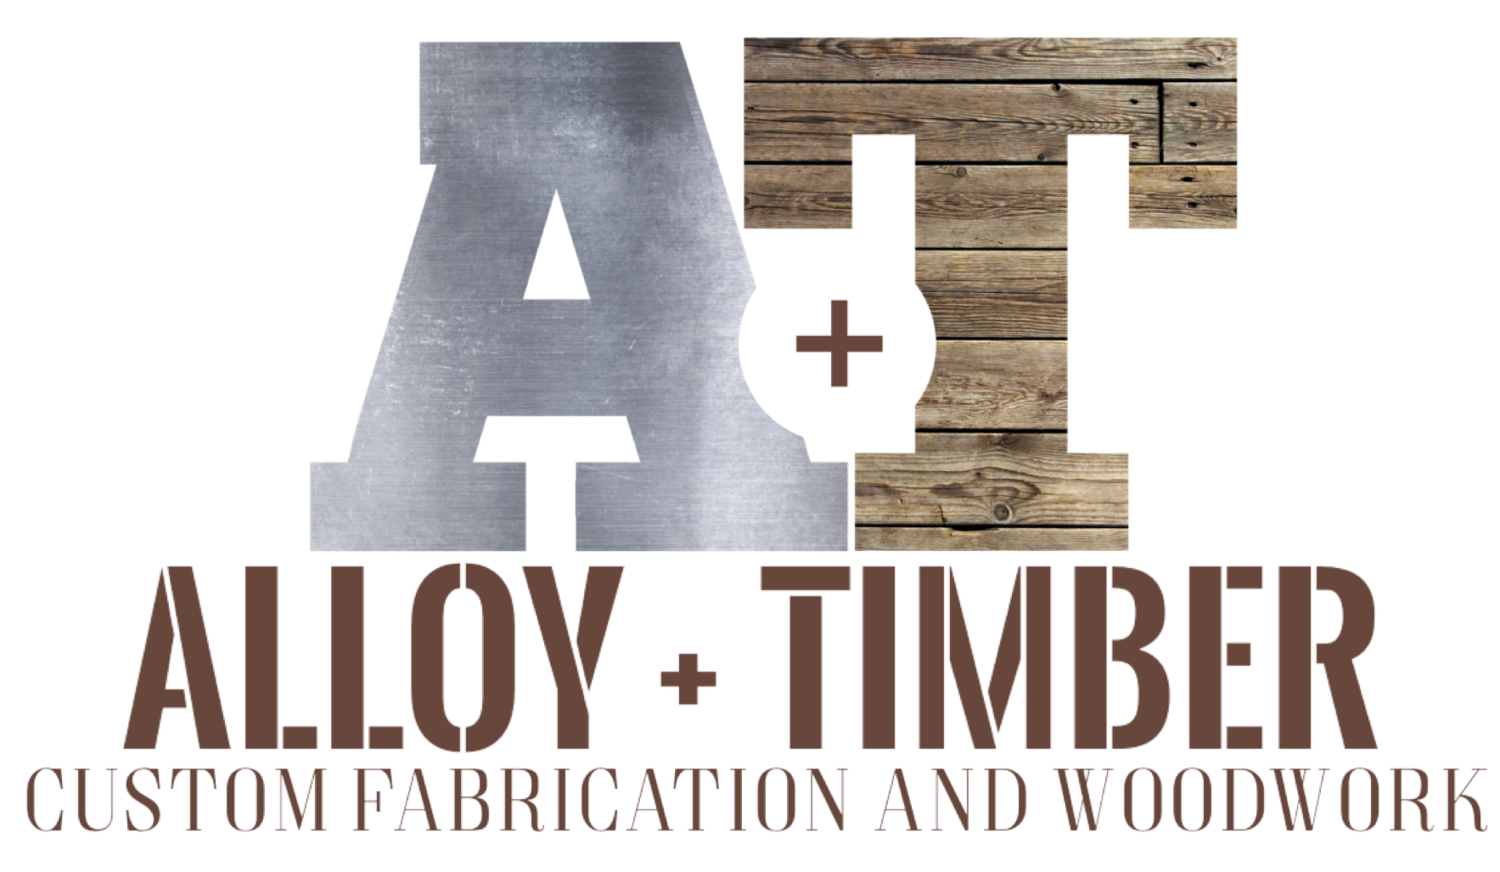 ALLOY+TIMBER